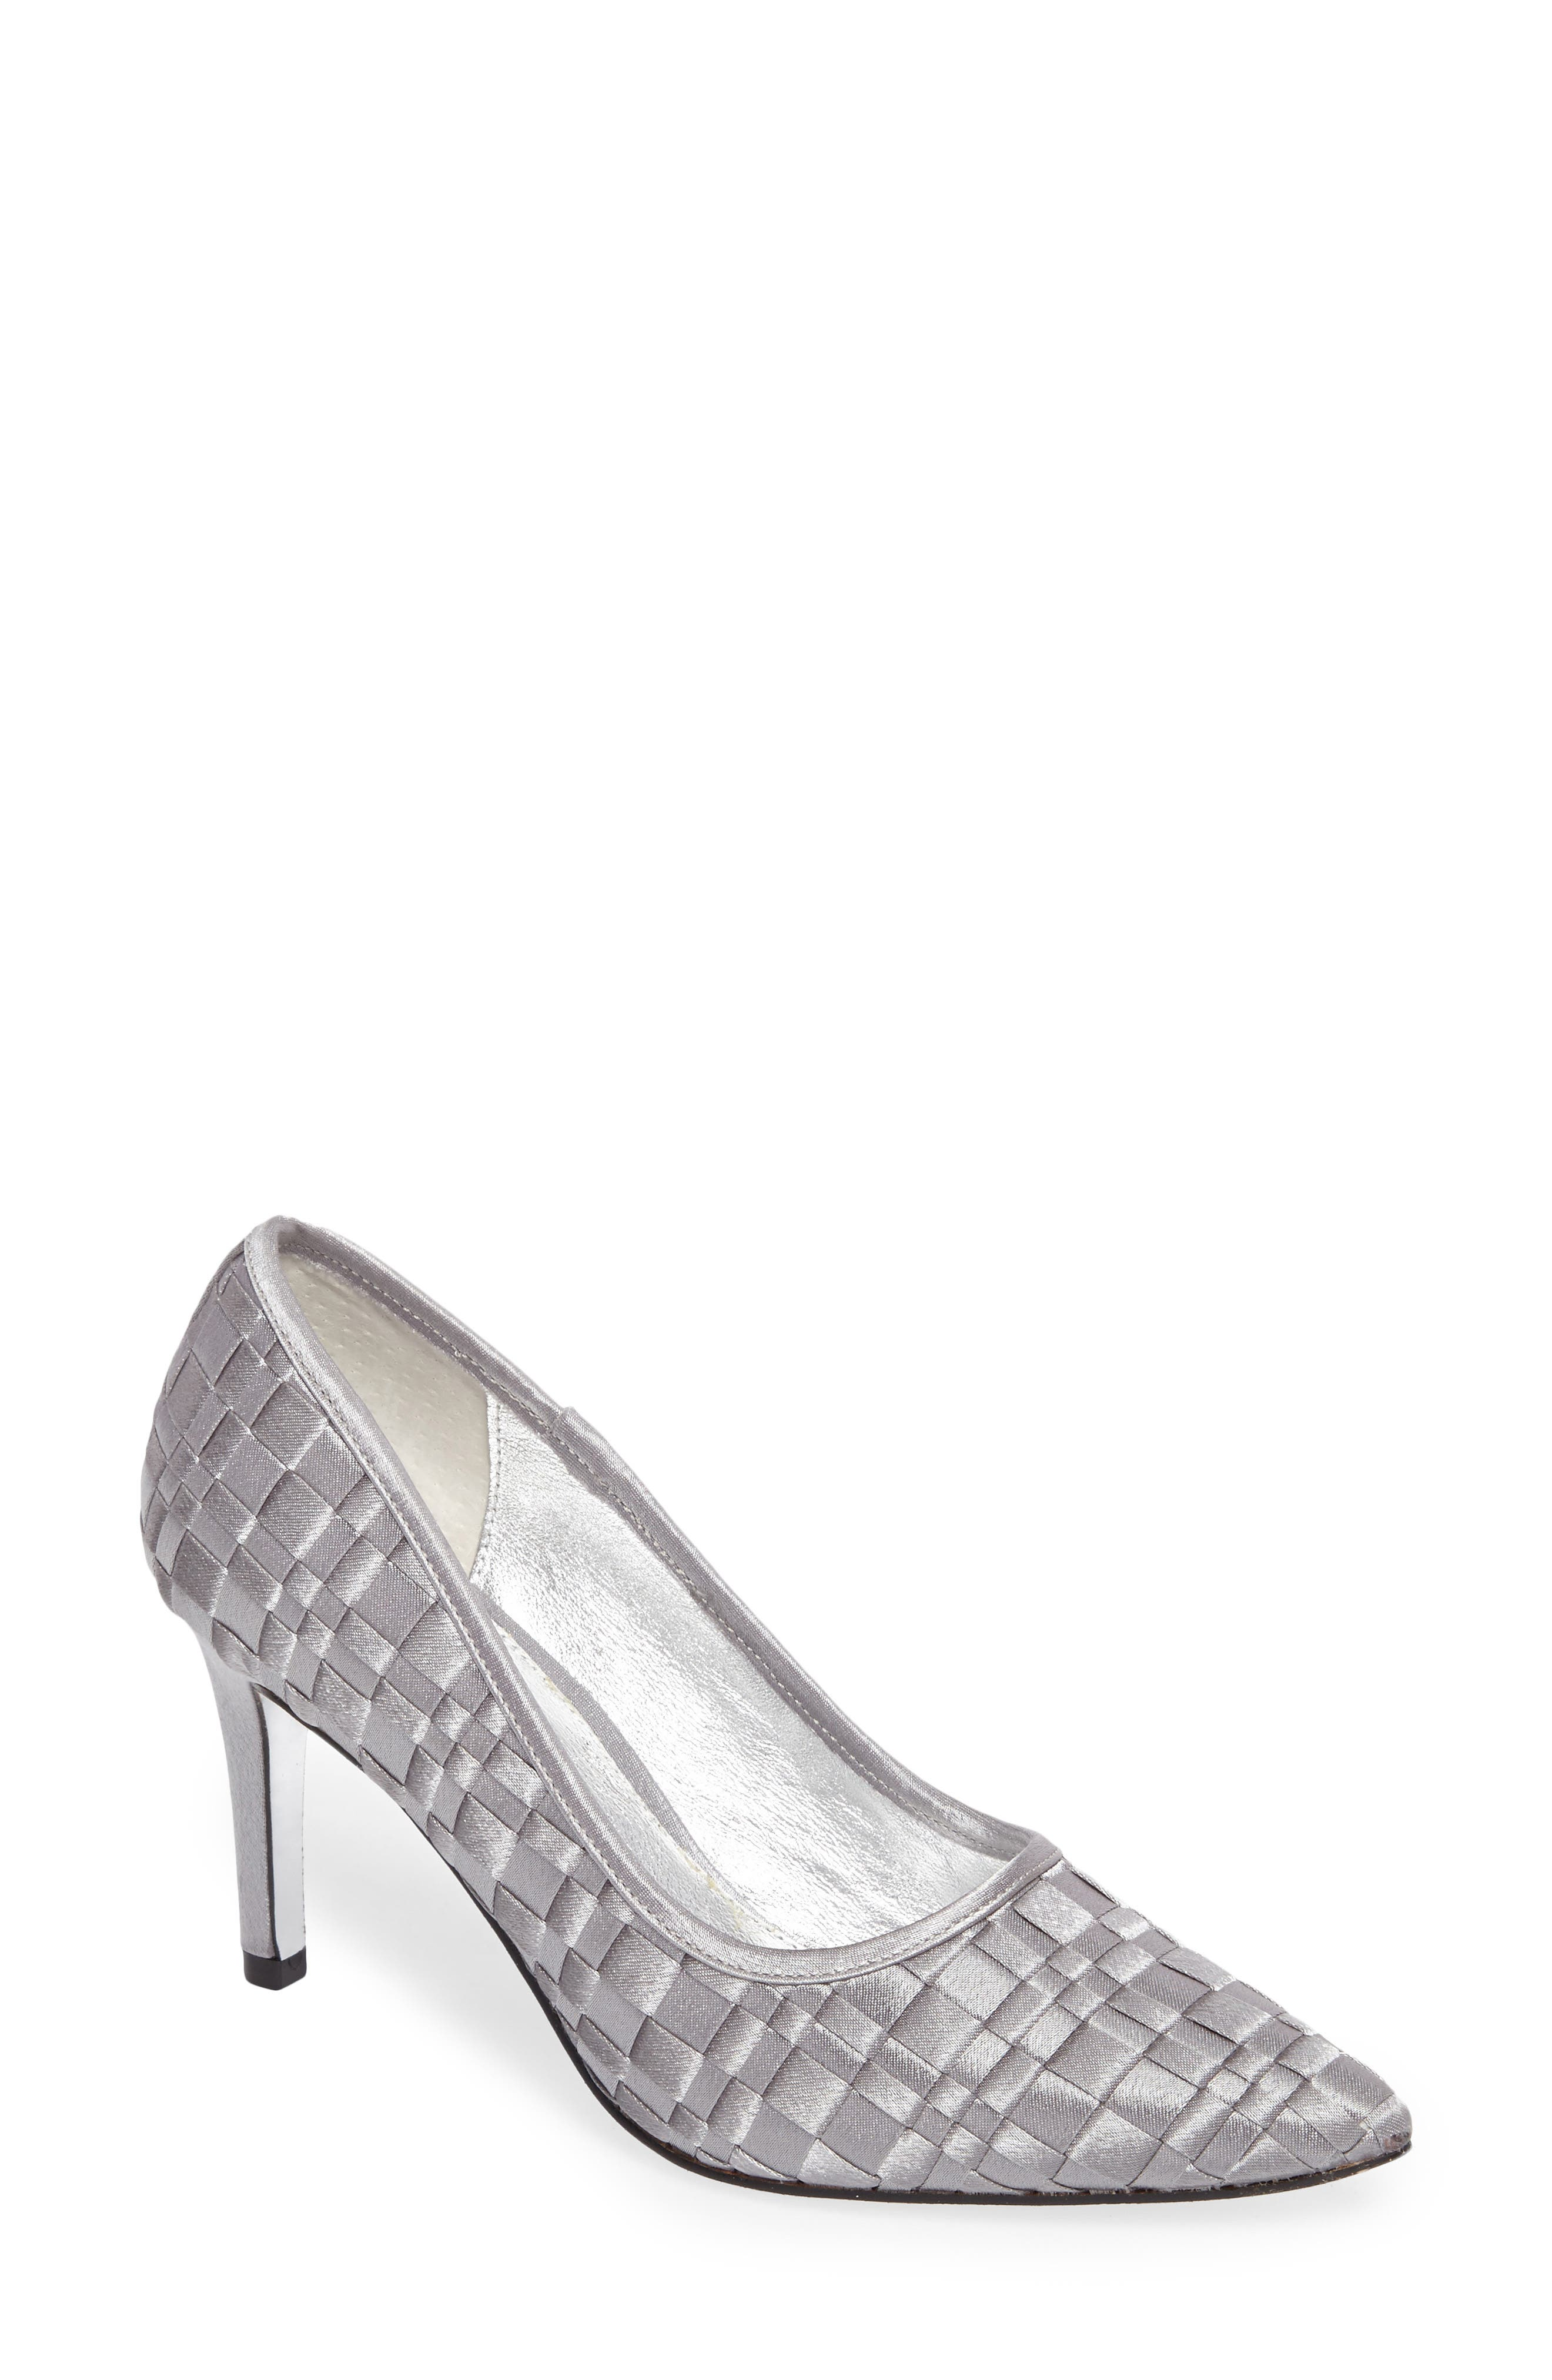 Alternate Image 1 Selected - Adrianna Papell Hasting Pointy Toe Pump (Women)